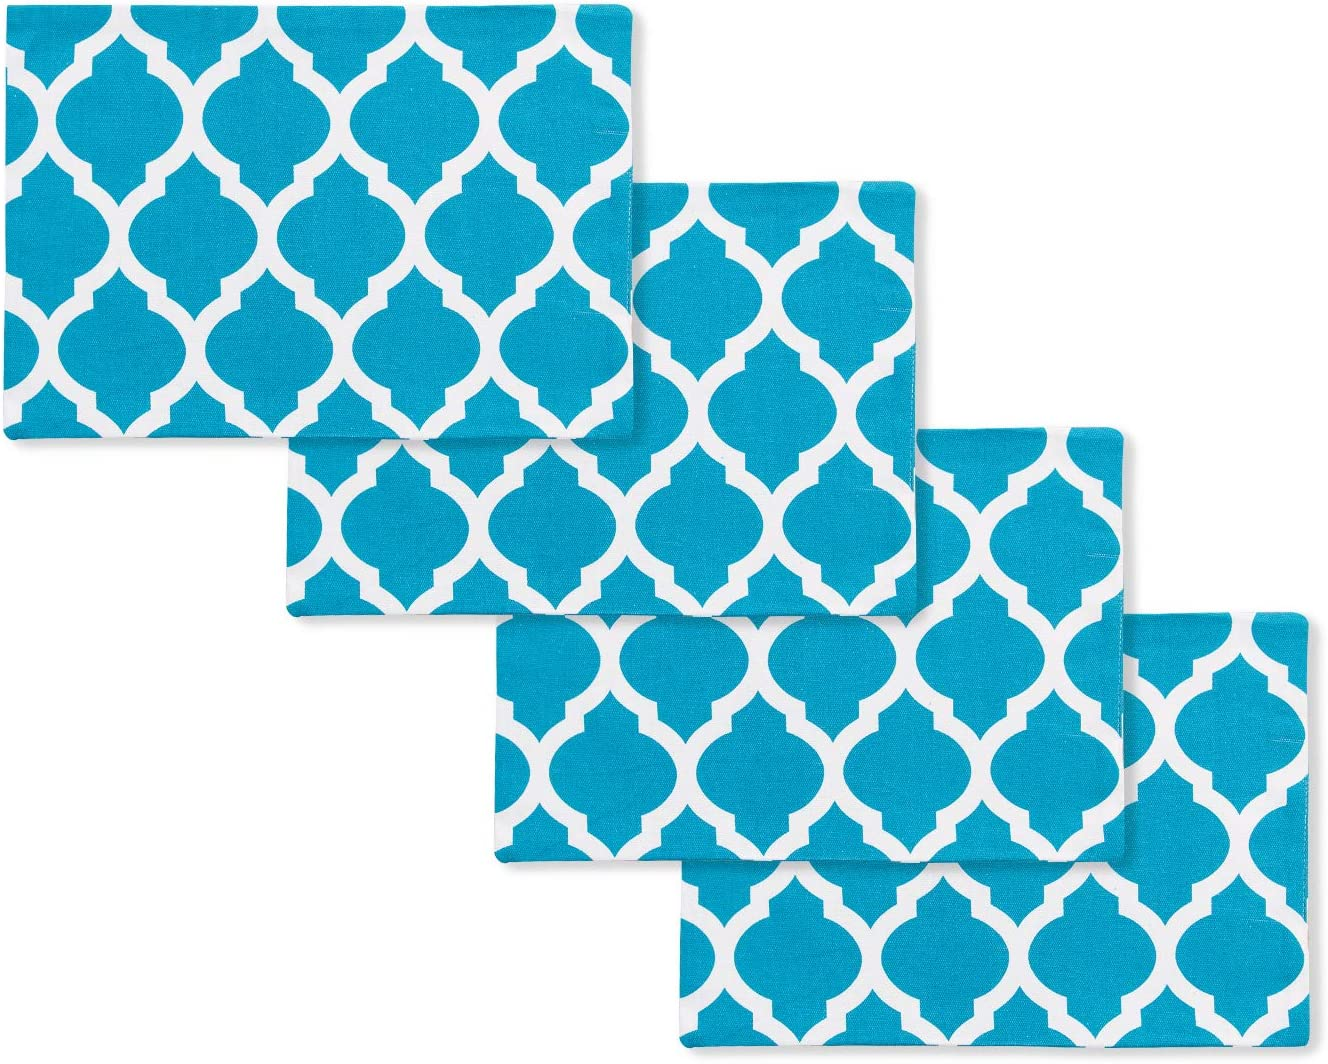 NATUS WEAVER Set of 4, 2 Side Cotton Placemats Heat Resistant Dining Table Place Mats for Kitchen Table, 12 x 18 inches, Geometric Trellis Chain Print,Teal Blue